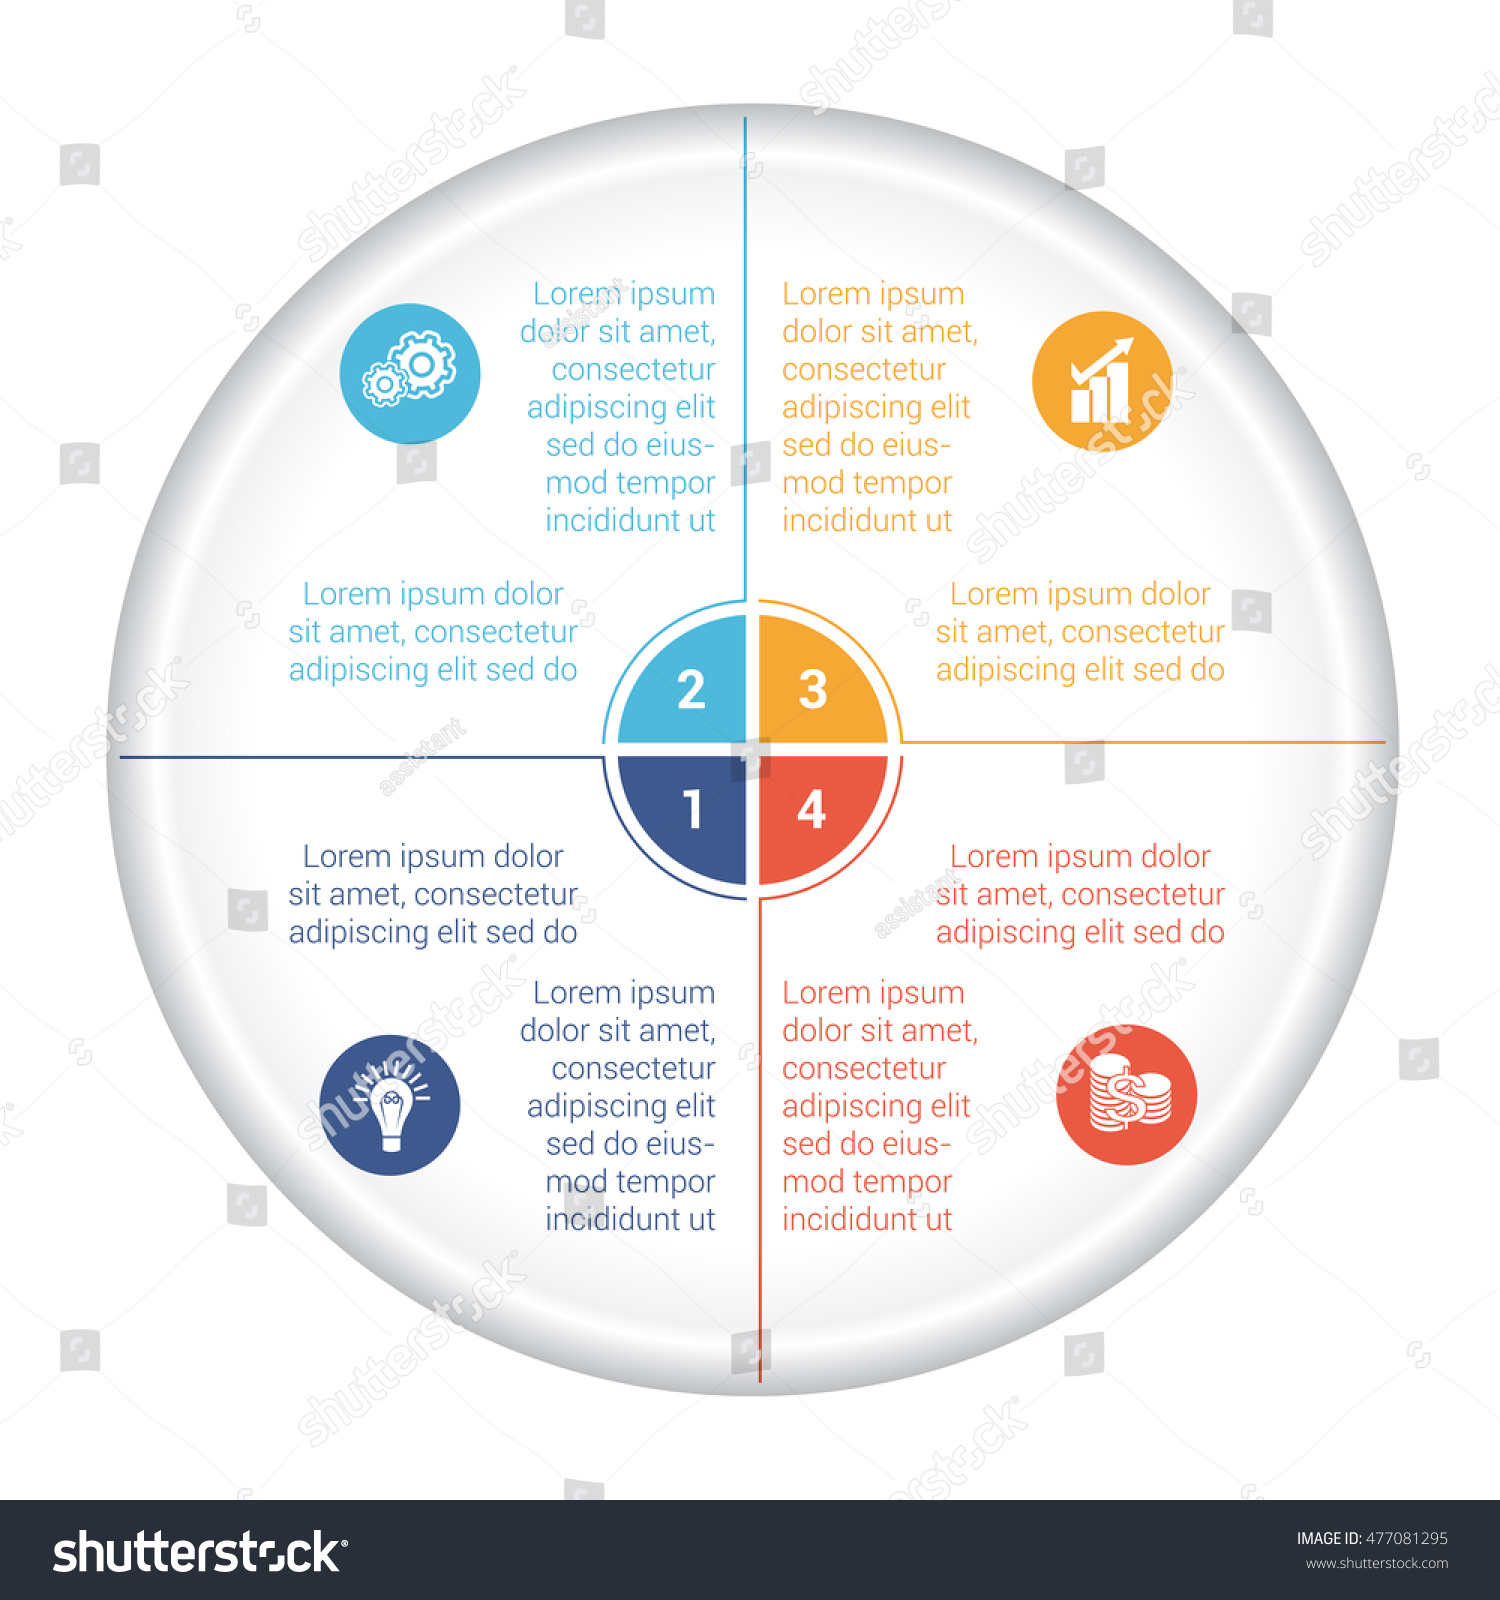 Php pie chart example image collections free any chart examples php pie chart example image collections free any chart examples php pie chart example images free nvjuhfo Image collections